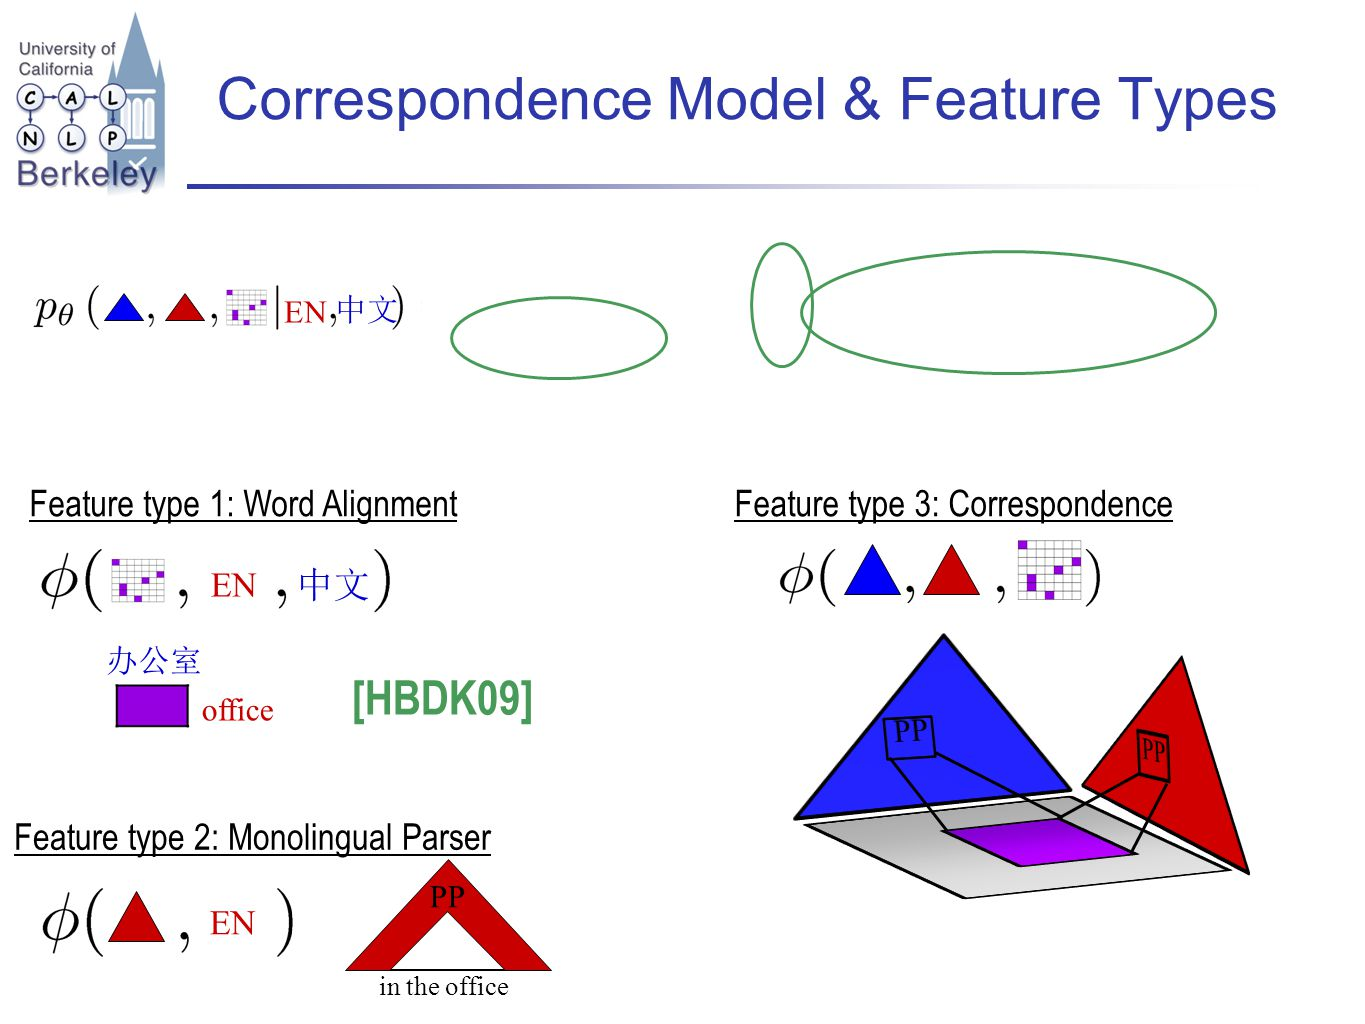 Correspondence Model & Feature Types office Feature type 1: Word Alignment EN Feature type 3: Correspondence Feature type 2: Monolingual Parser EN PP